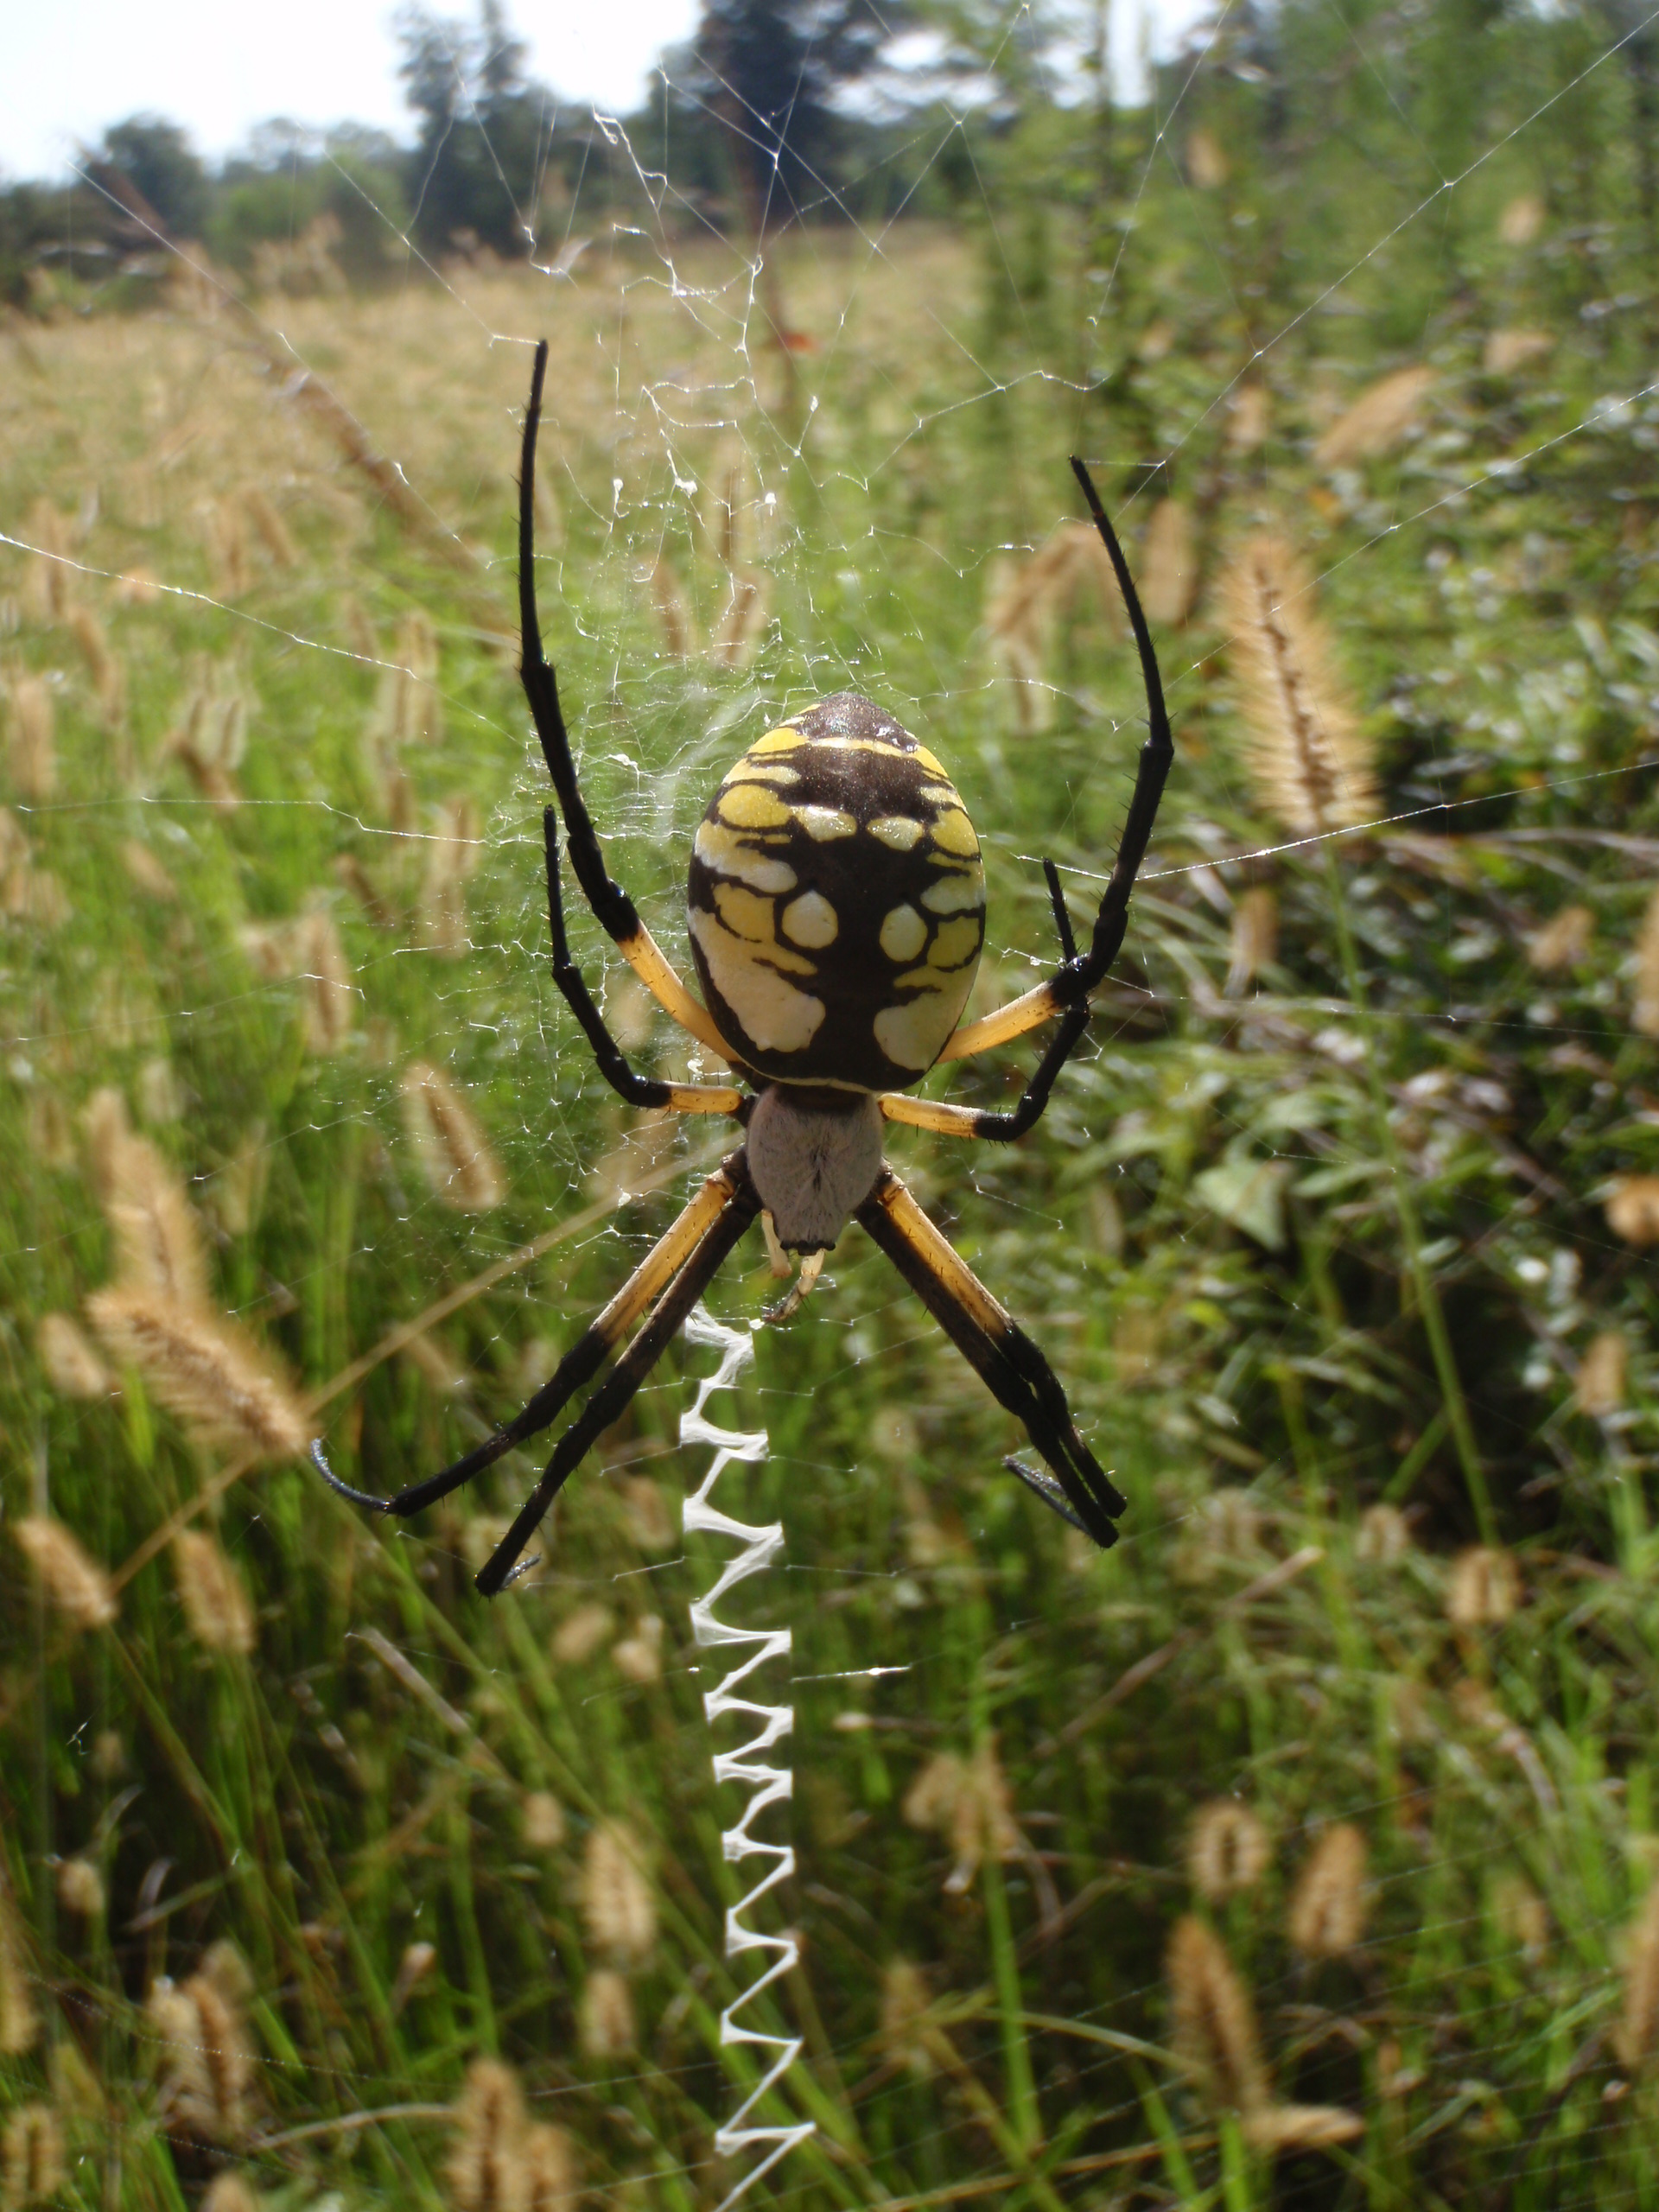 File:Black and Yellow Garden Spider, Argiope aurantia;giant colorful ...